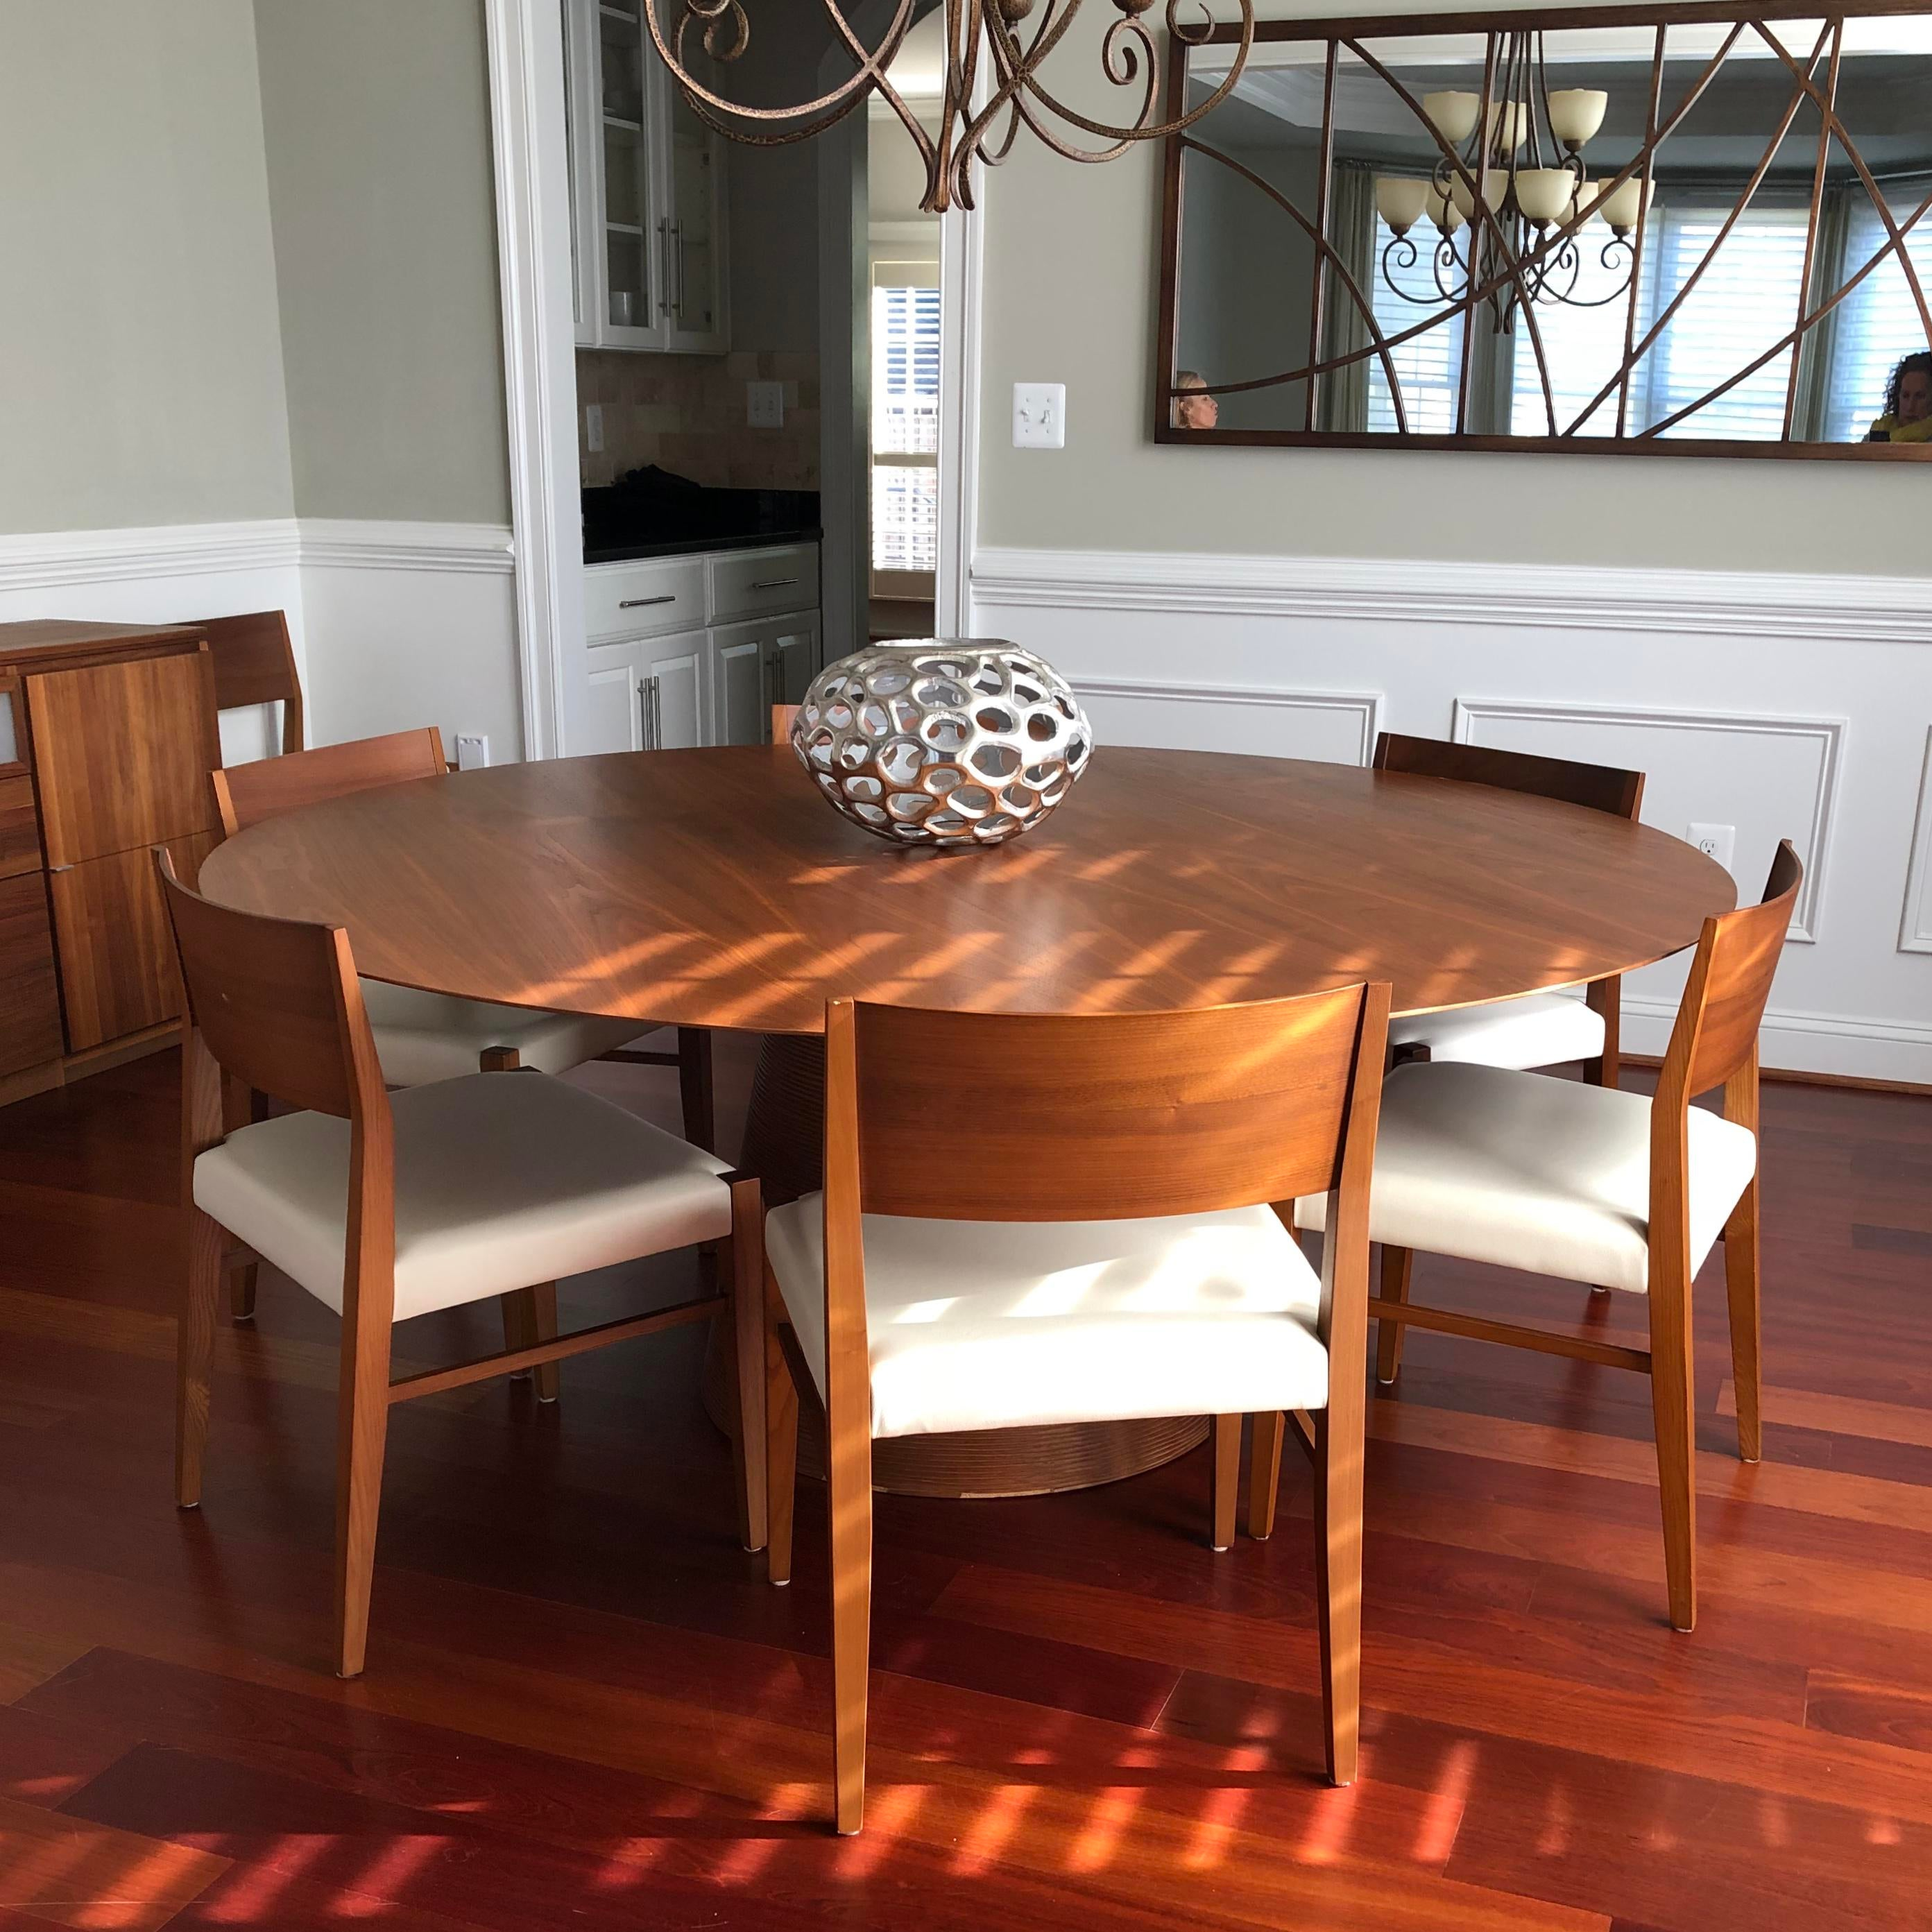 Modern Scan Design Dining Table Set 9 Pieces Chairish